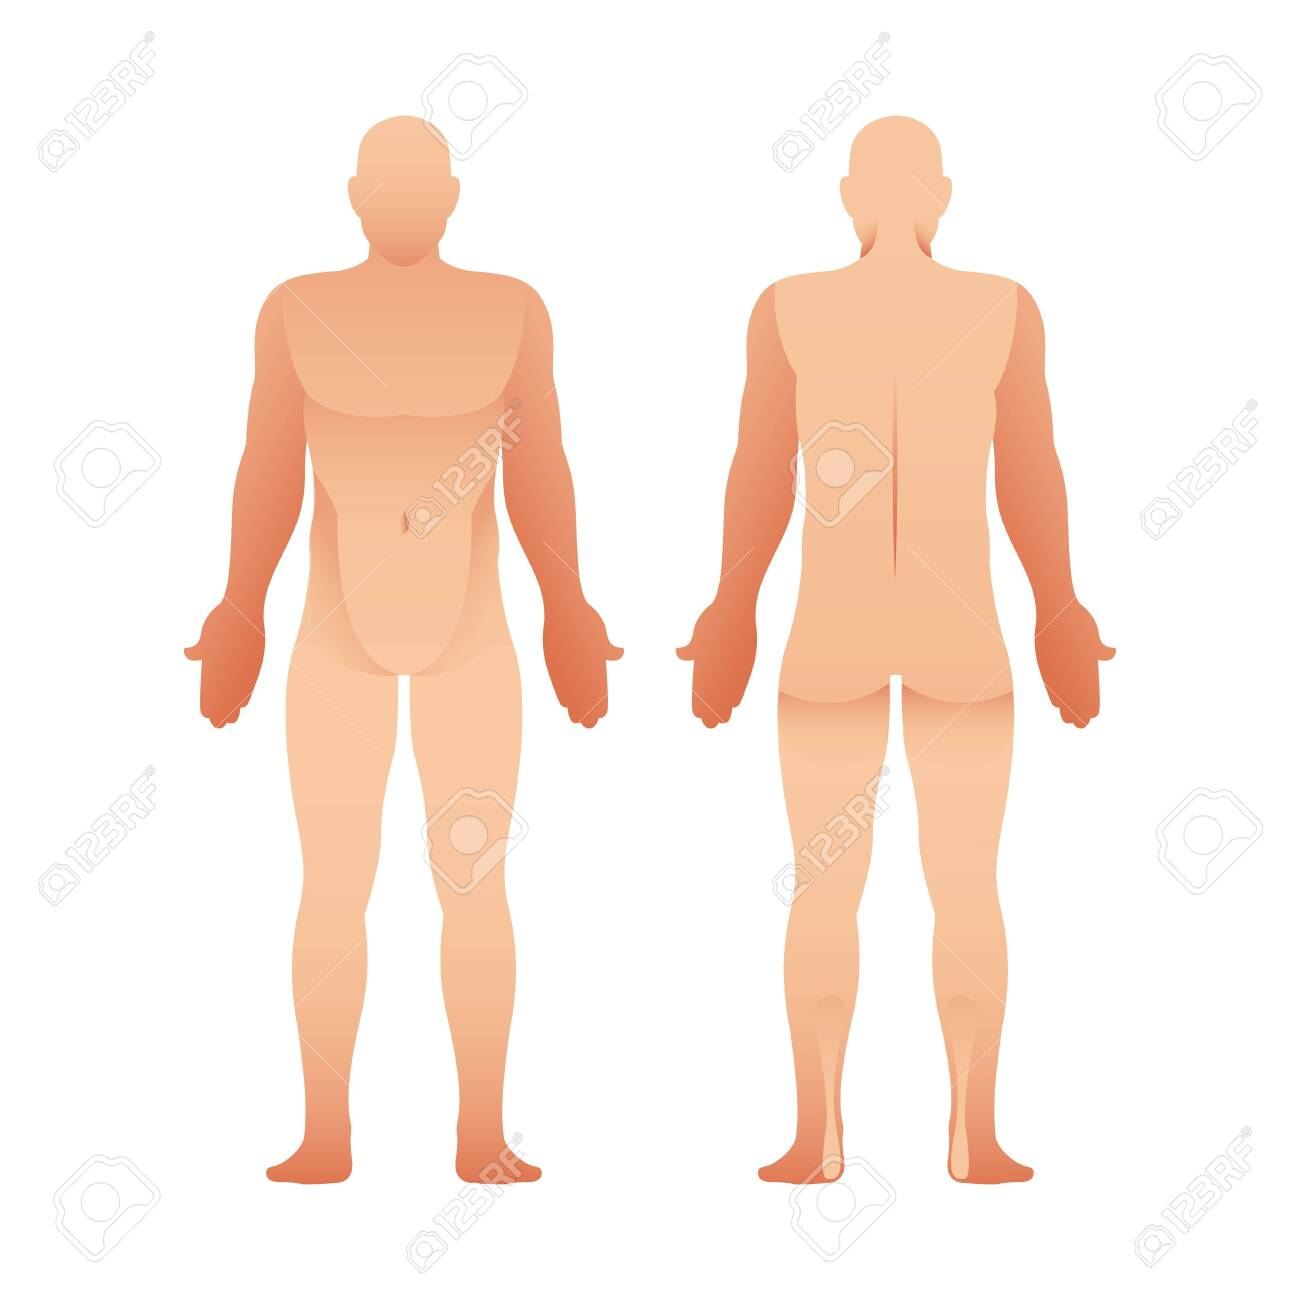 silhouettes of man front and back view vector human body royalty free cliparts vectors and stock illustration image 135766540 silhouettes of man front and back view vector human body